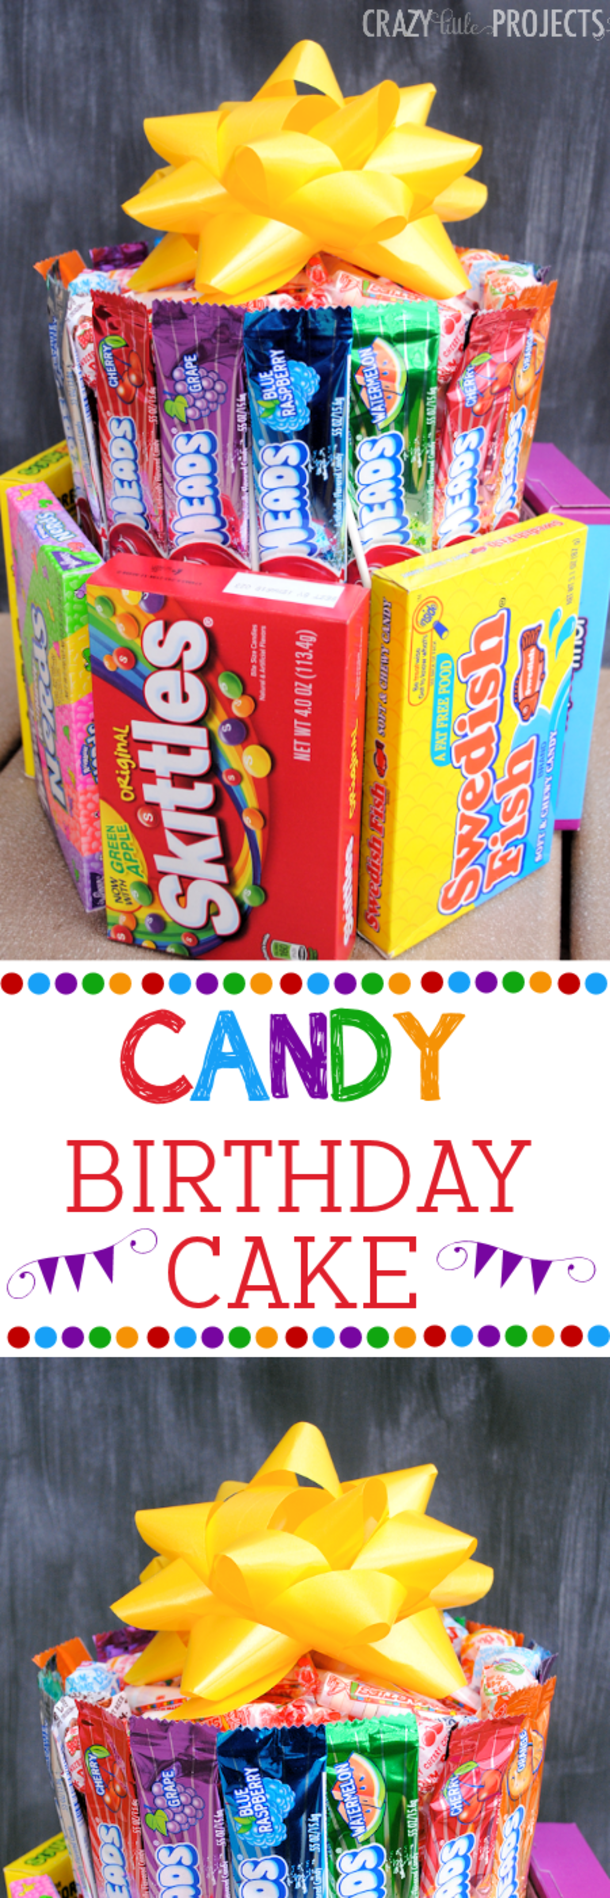 10 diy gifts for a girl's sweet 16 | cute diy | pinterest | diy